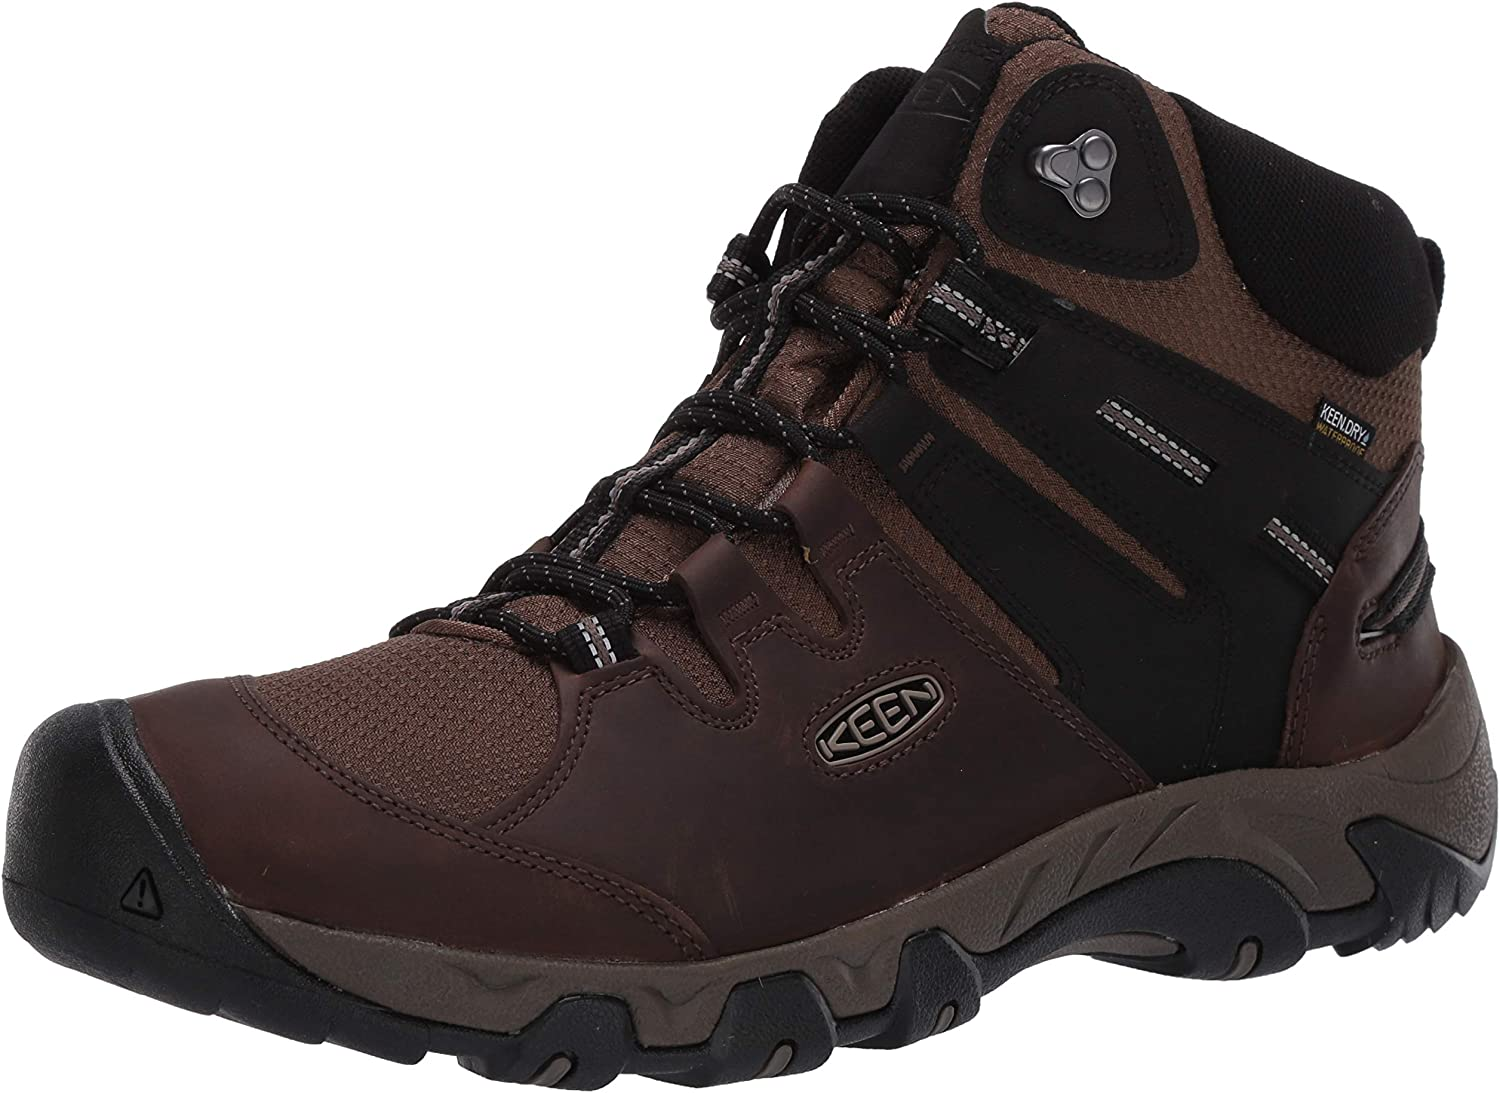 KEEN Men's Steens Mid Low price Now free shipping Boot Wp Hiking